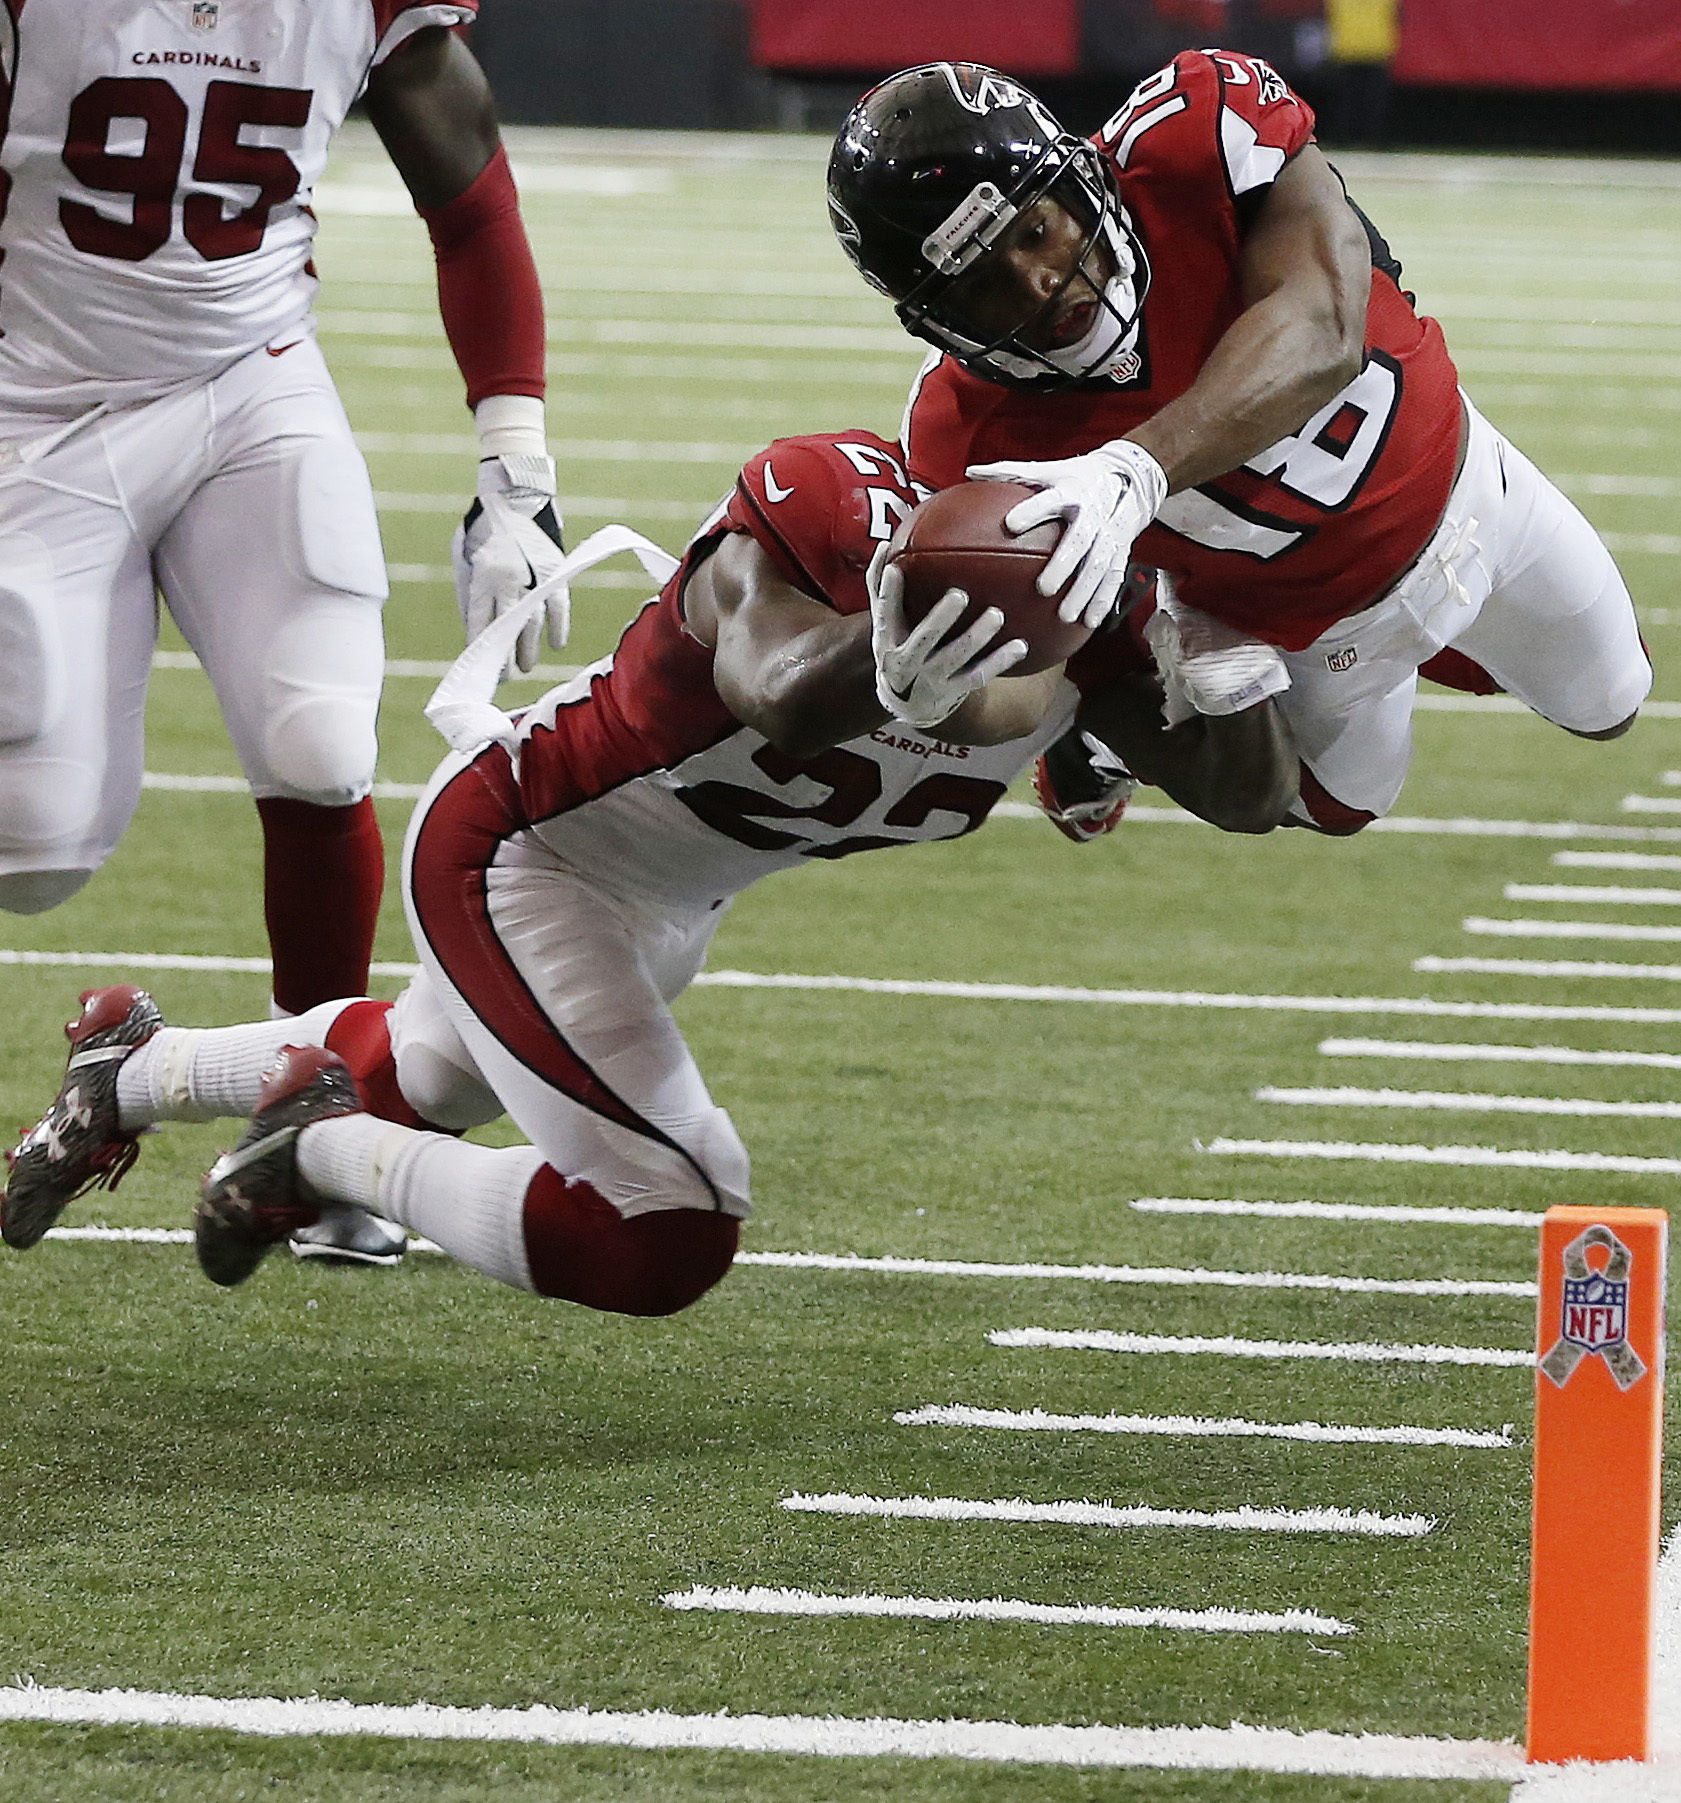 Atlanta Falcons wide receiver Taylor Gabriel (18) leaps into the end zone for a touchdown against Arizona Cardinals strong safety Tony Jefferson (22) during the second of an NFL football game, Sunday, Nov. 27, 2016, in Atlanta. (AP Photo/John Bazemore)